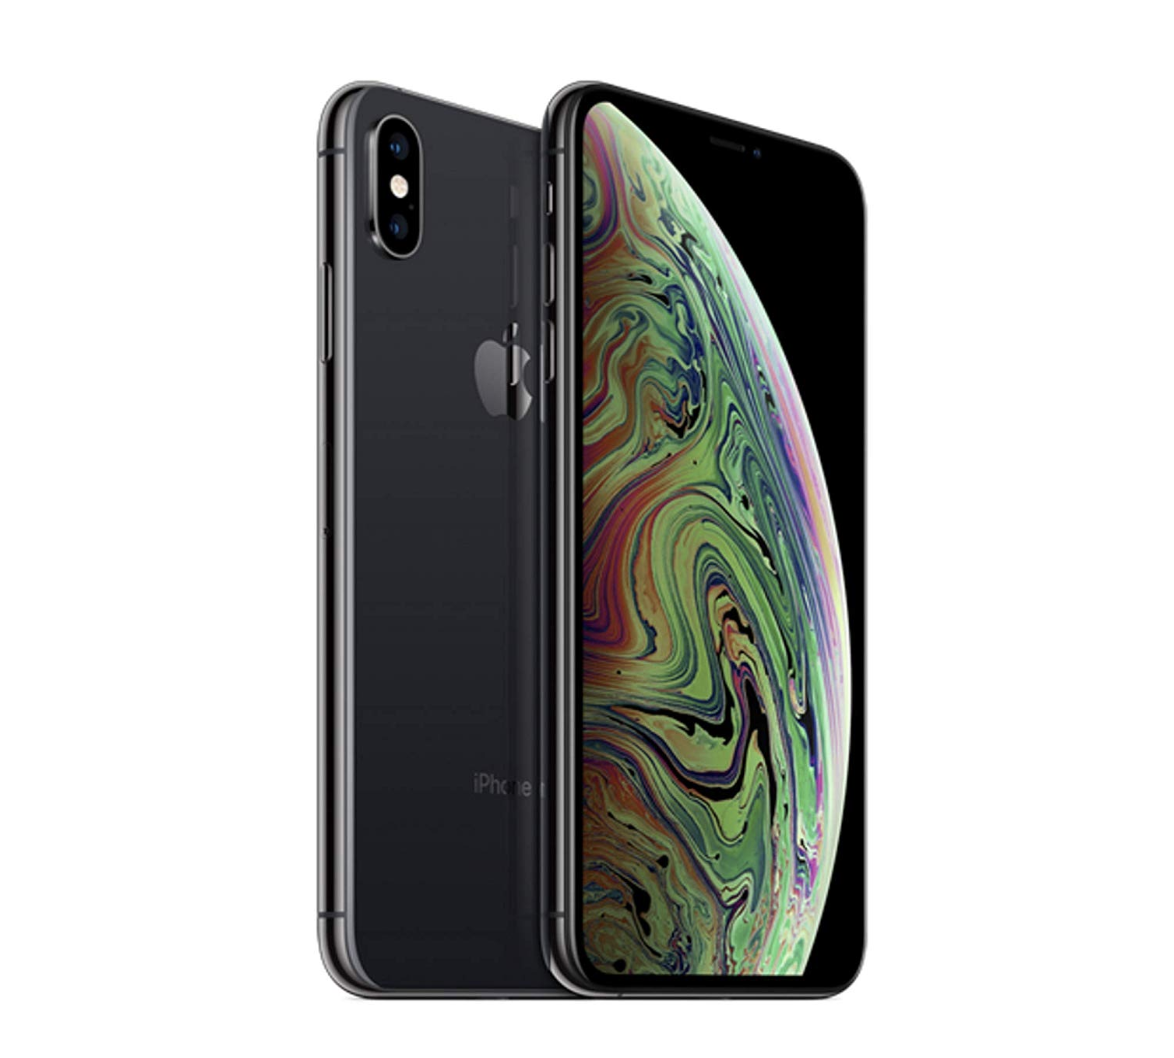 Apple iPhone XS, Fully Unlocked, 256 GB (Renewed)